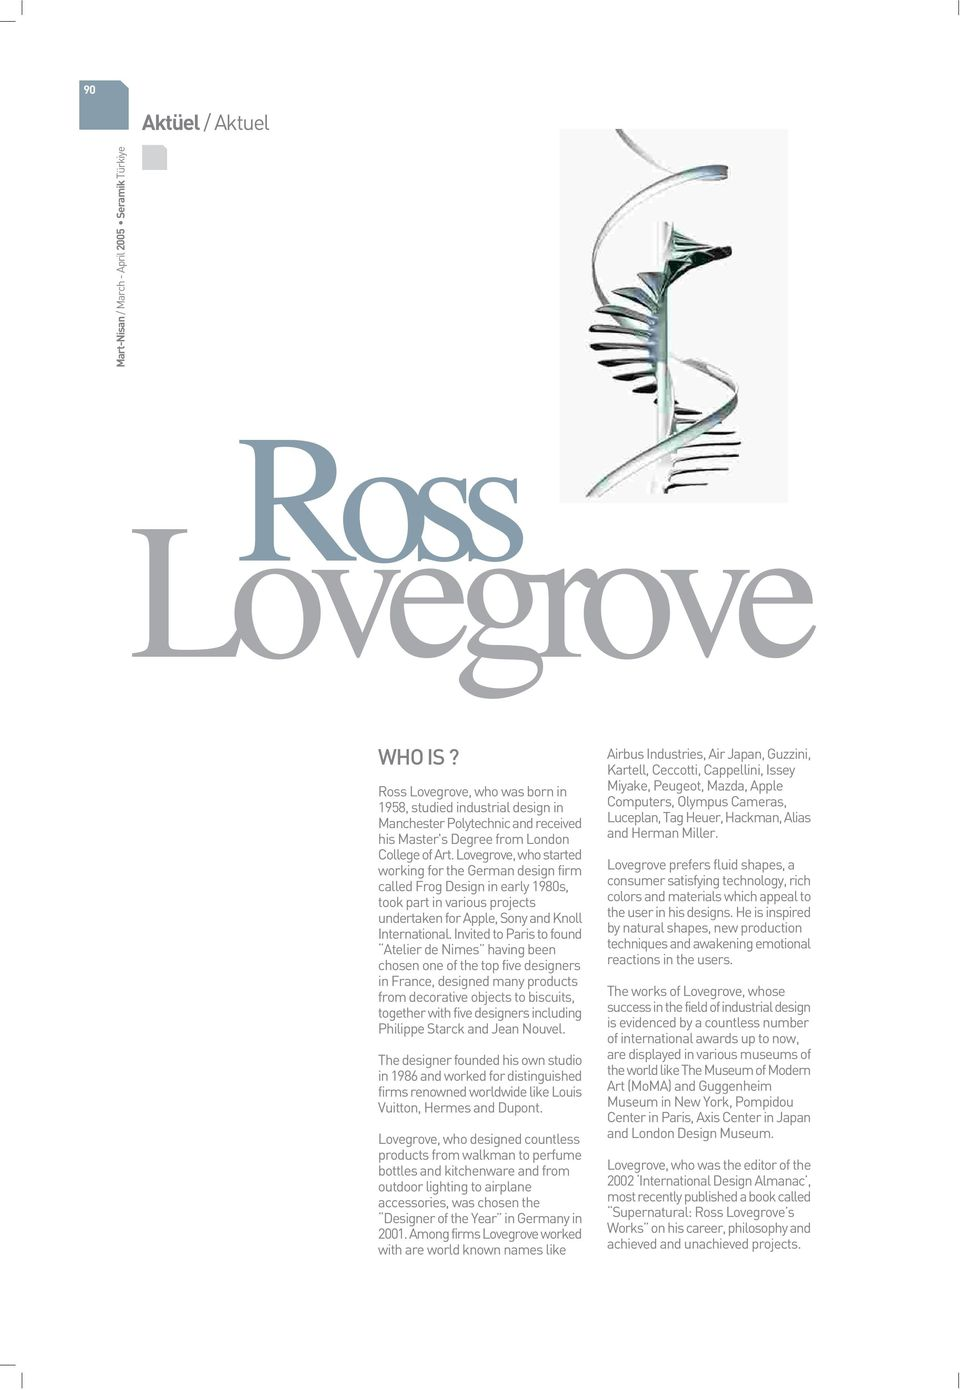 Lovegrove, who started working for the German design firm called Frog Design in early 1980s, took part in various projects undertaken for Apple, Sony and Knoll International.